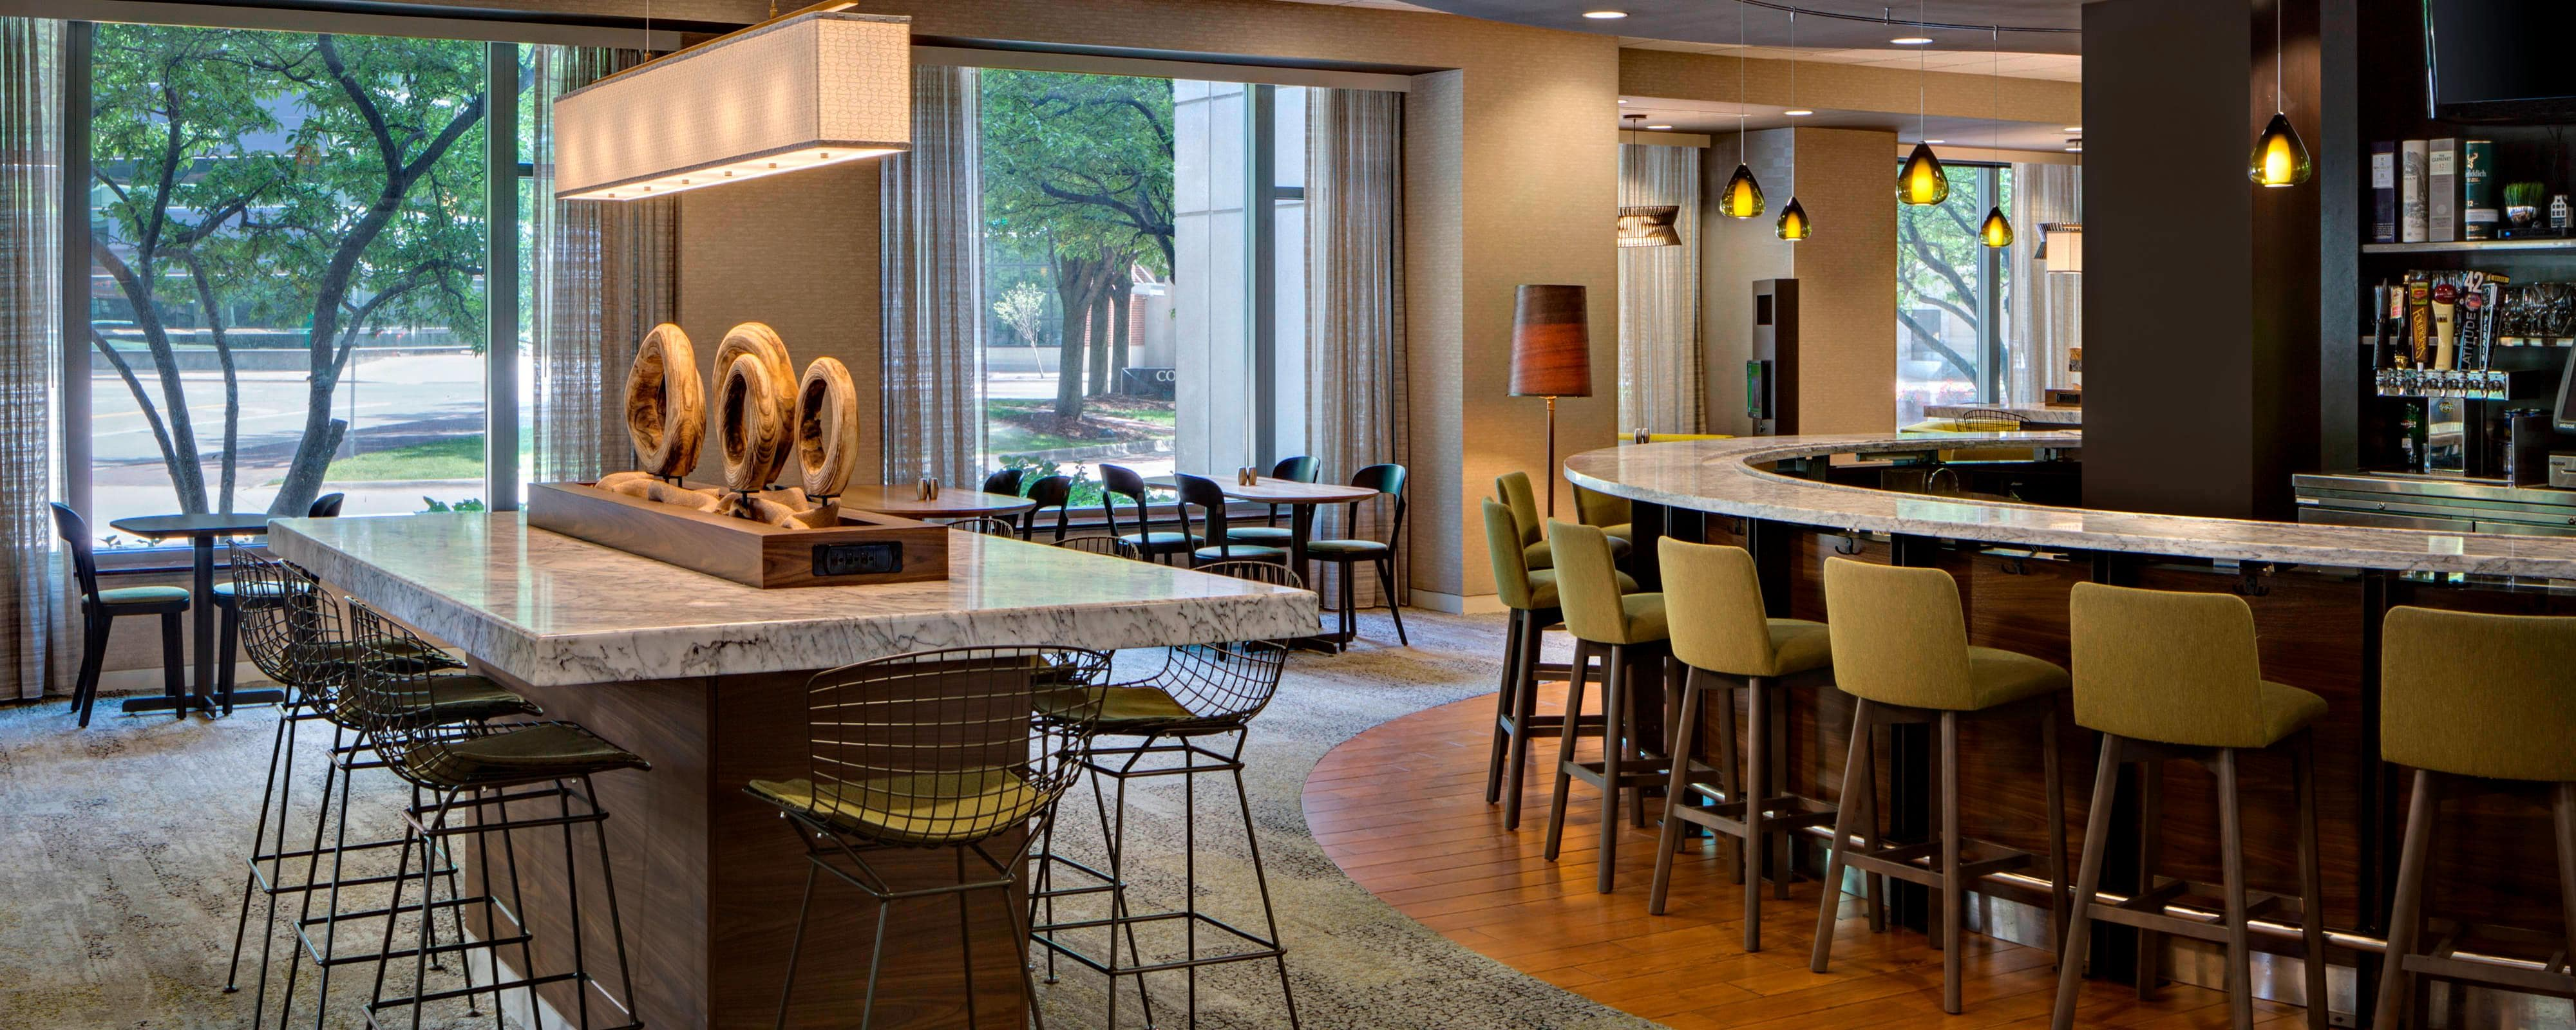 Rooms To Reserve In Restaurant In Grand Rapids